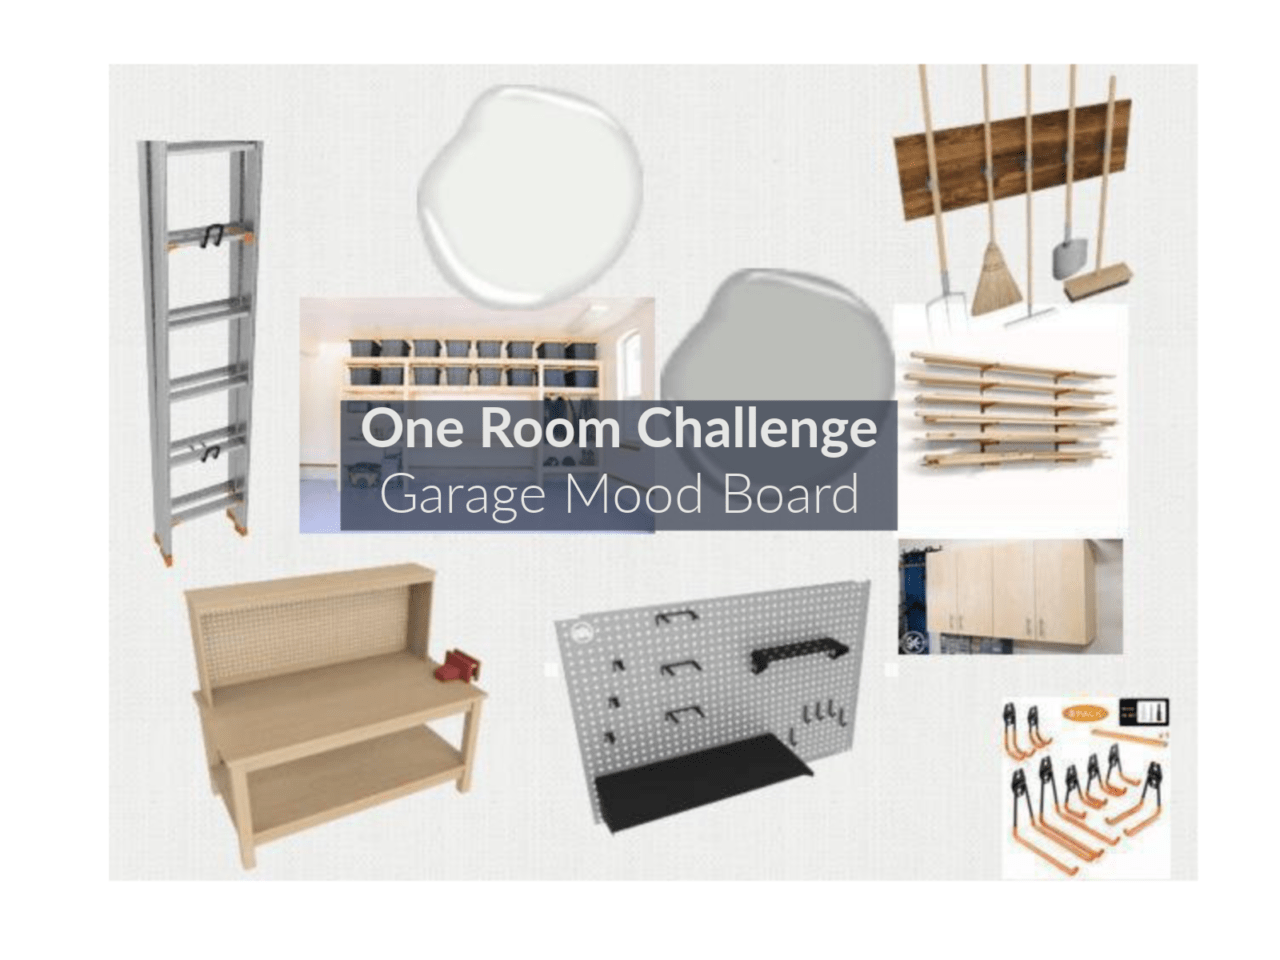 One Room Challenge, ORC, Garage Mood Board, Garage Design Board, Design Board, Garage, Garage Layout, Workshop, Worshop Layout, Garage Storage, Garage Design